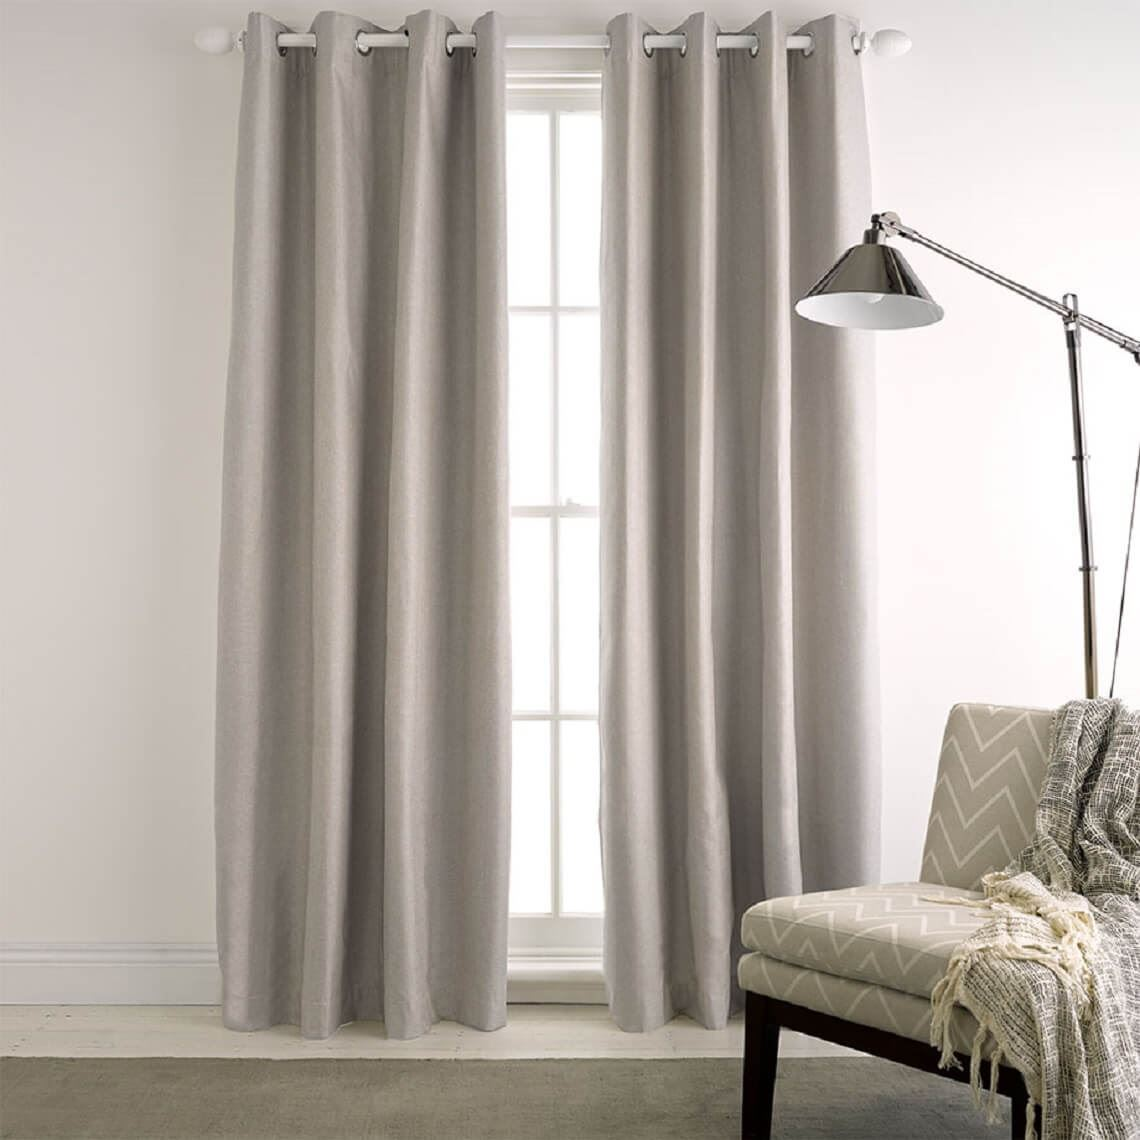 Milton Blockout Eyelet Curtain Size W 140cm x D 1cm x H 230cm in Silver 100% Polyester/Acrylic Flock Coating/Stainless Steel Freedom by Freedom, a Curtains for sale on Style Sourcebook